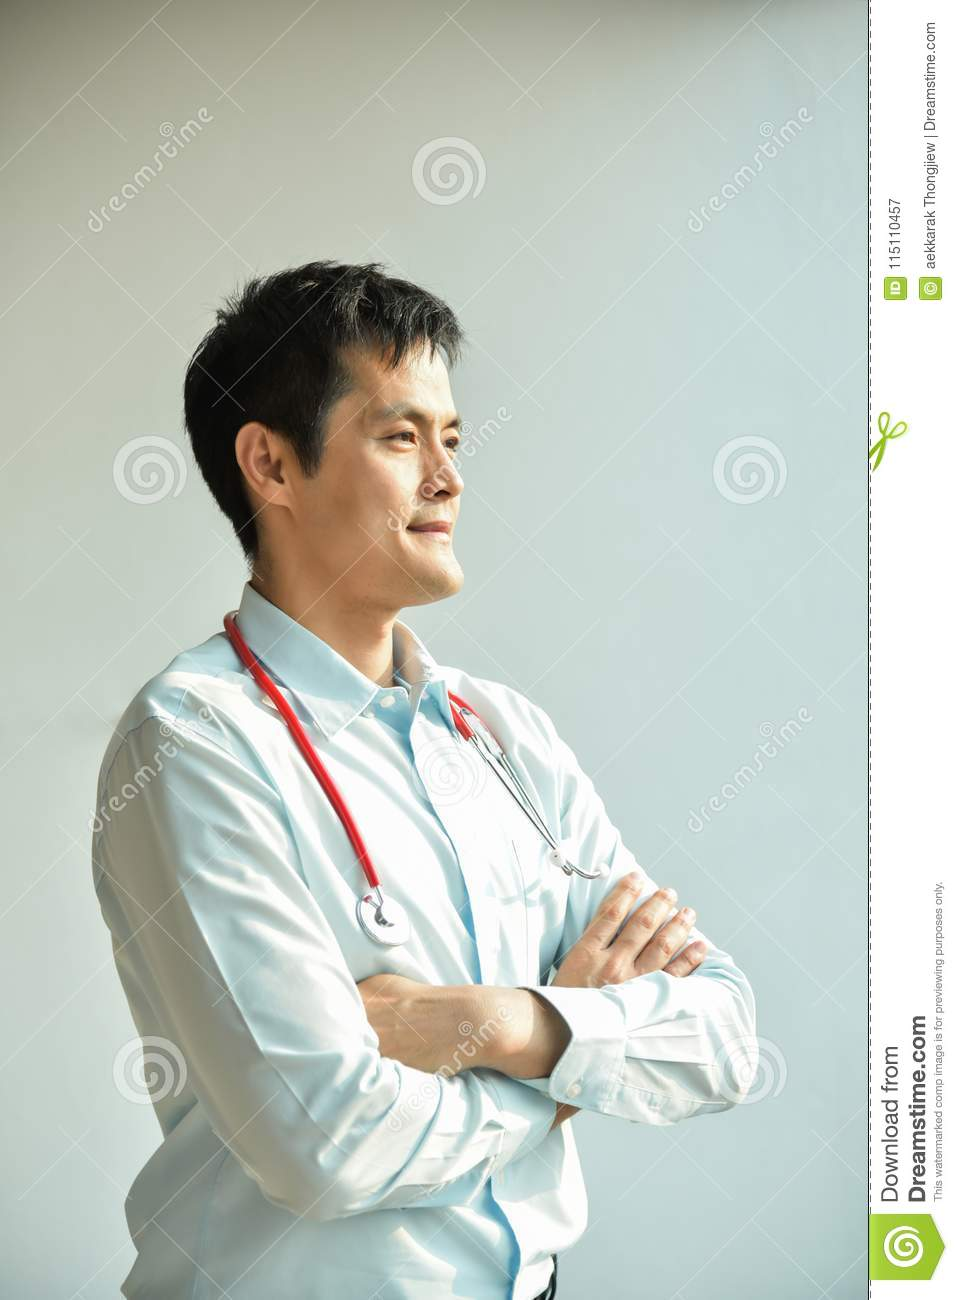 Recollect more Asian male doctor topic